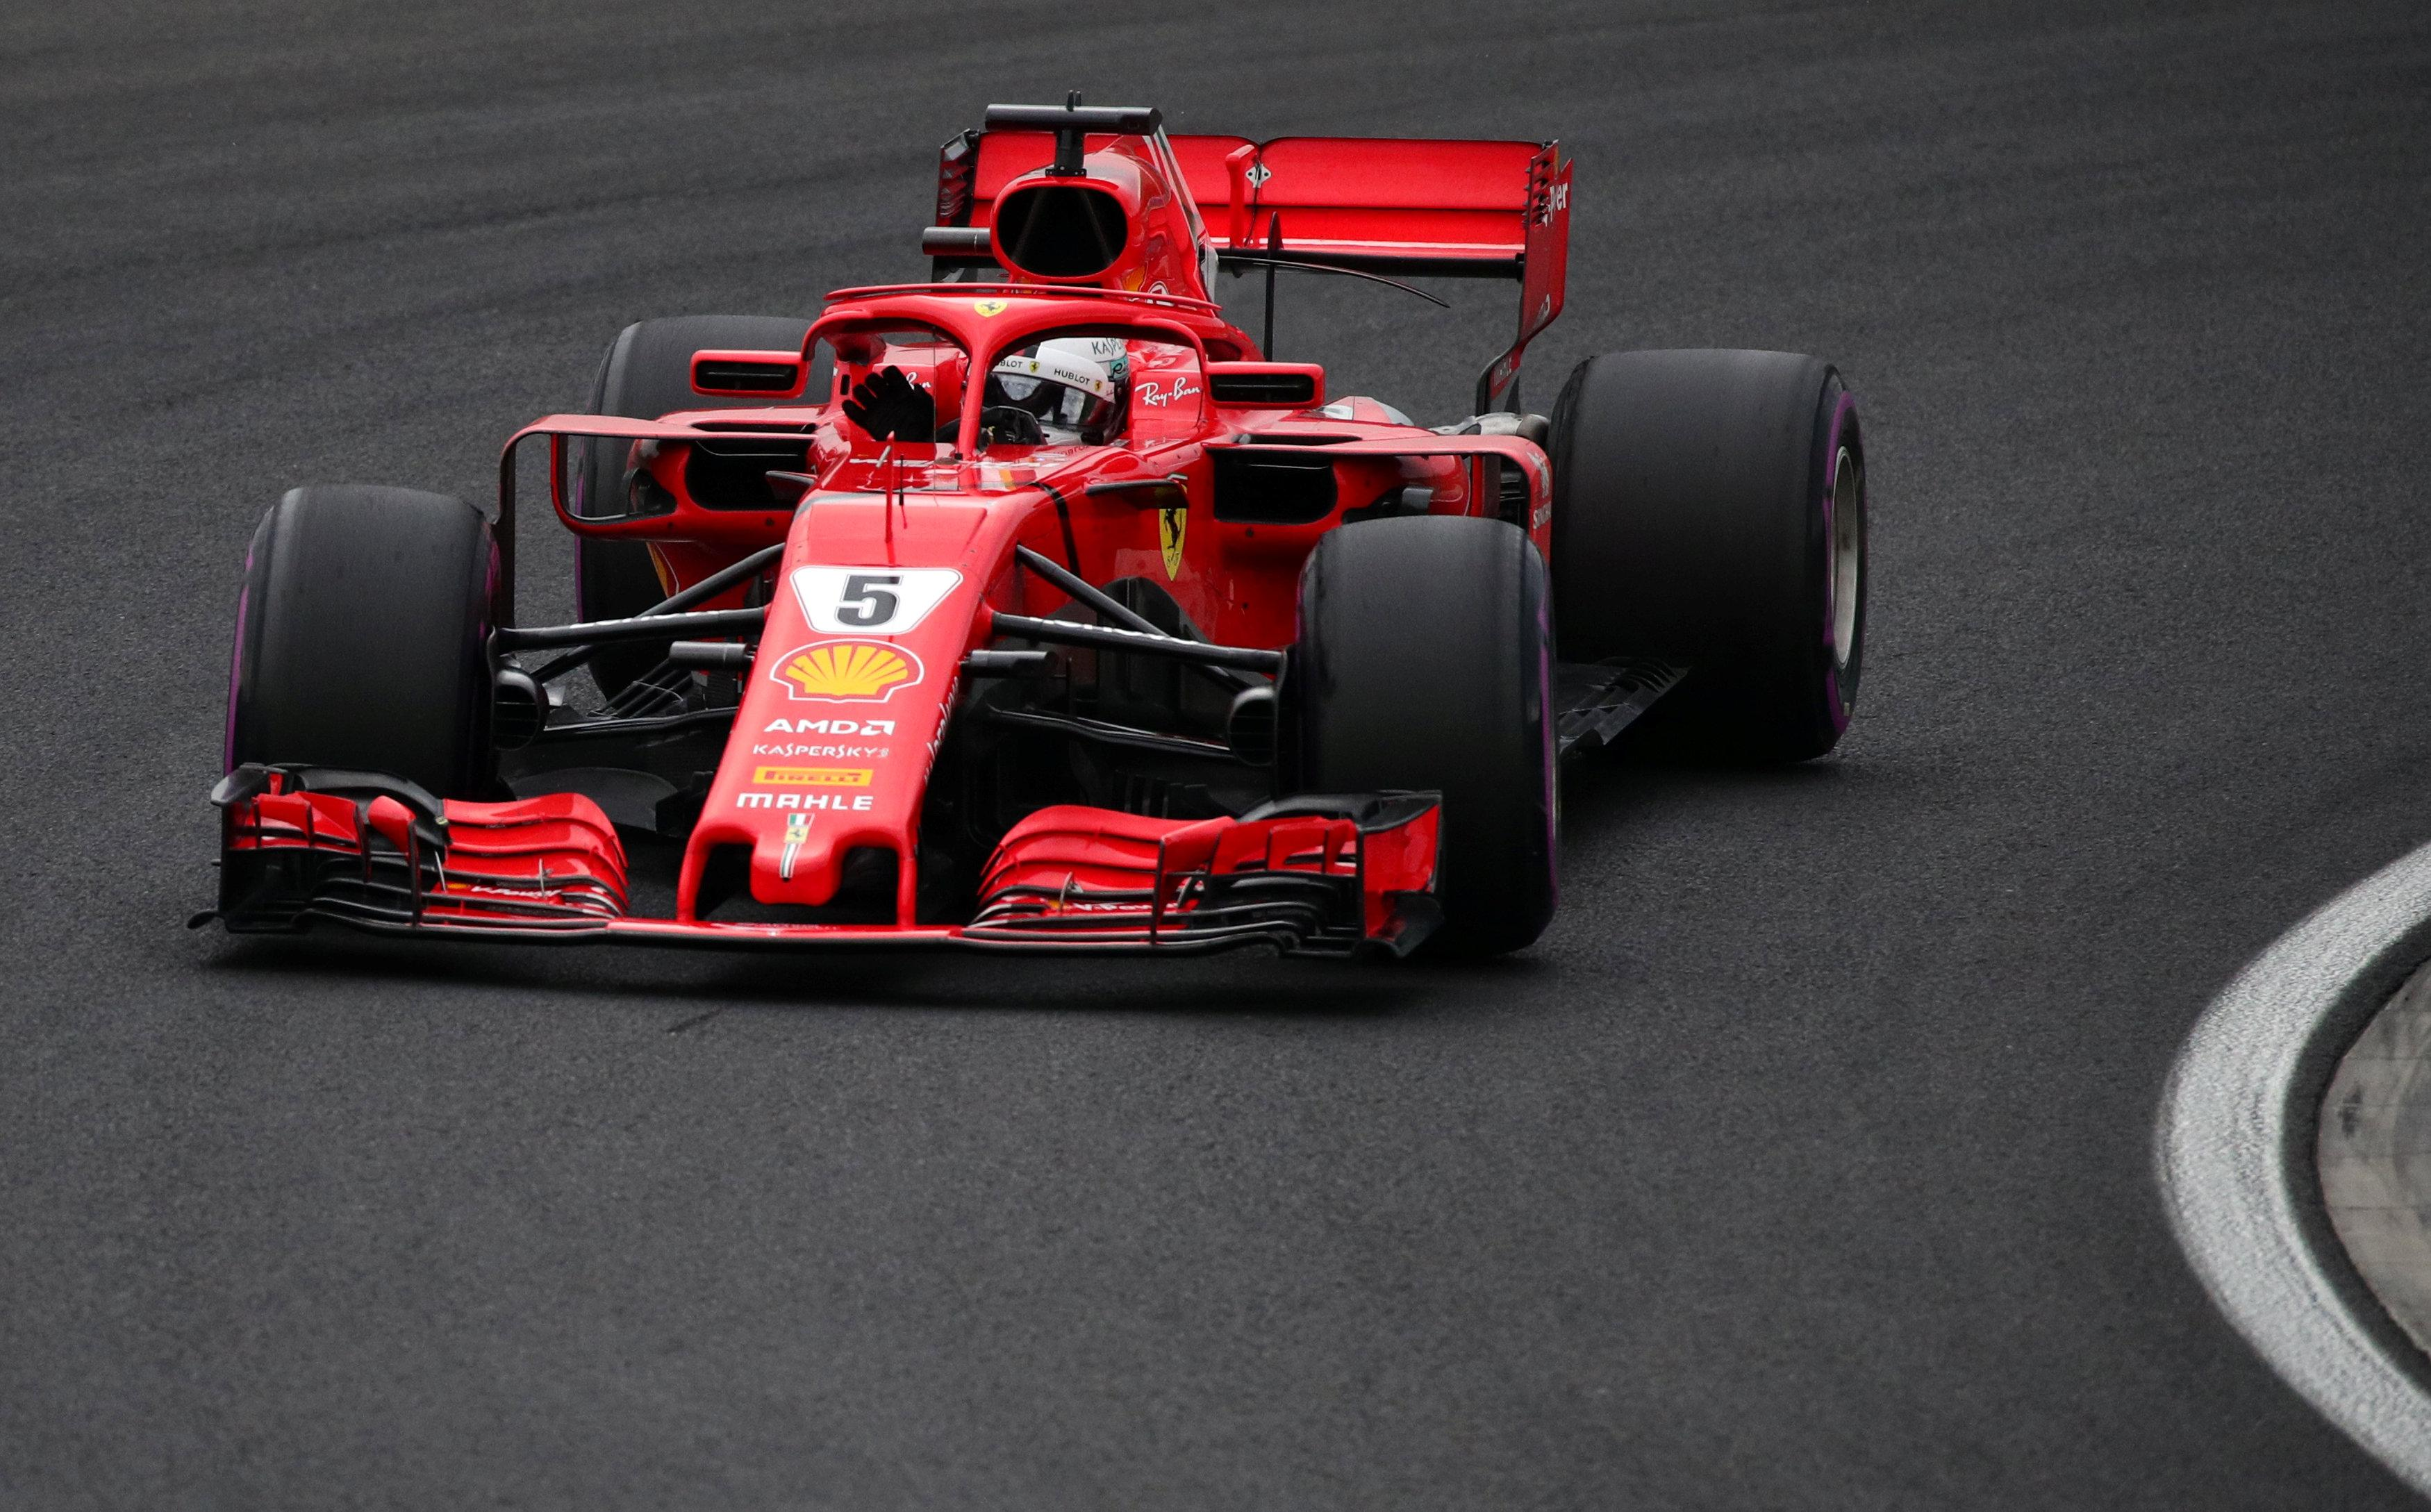 Vettel had to settle for fourth after failing to get ahead of team-mate Raikkonen on the last qualifying lap